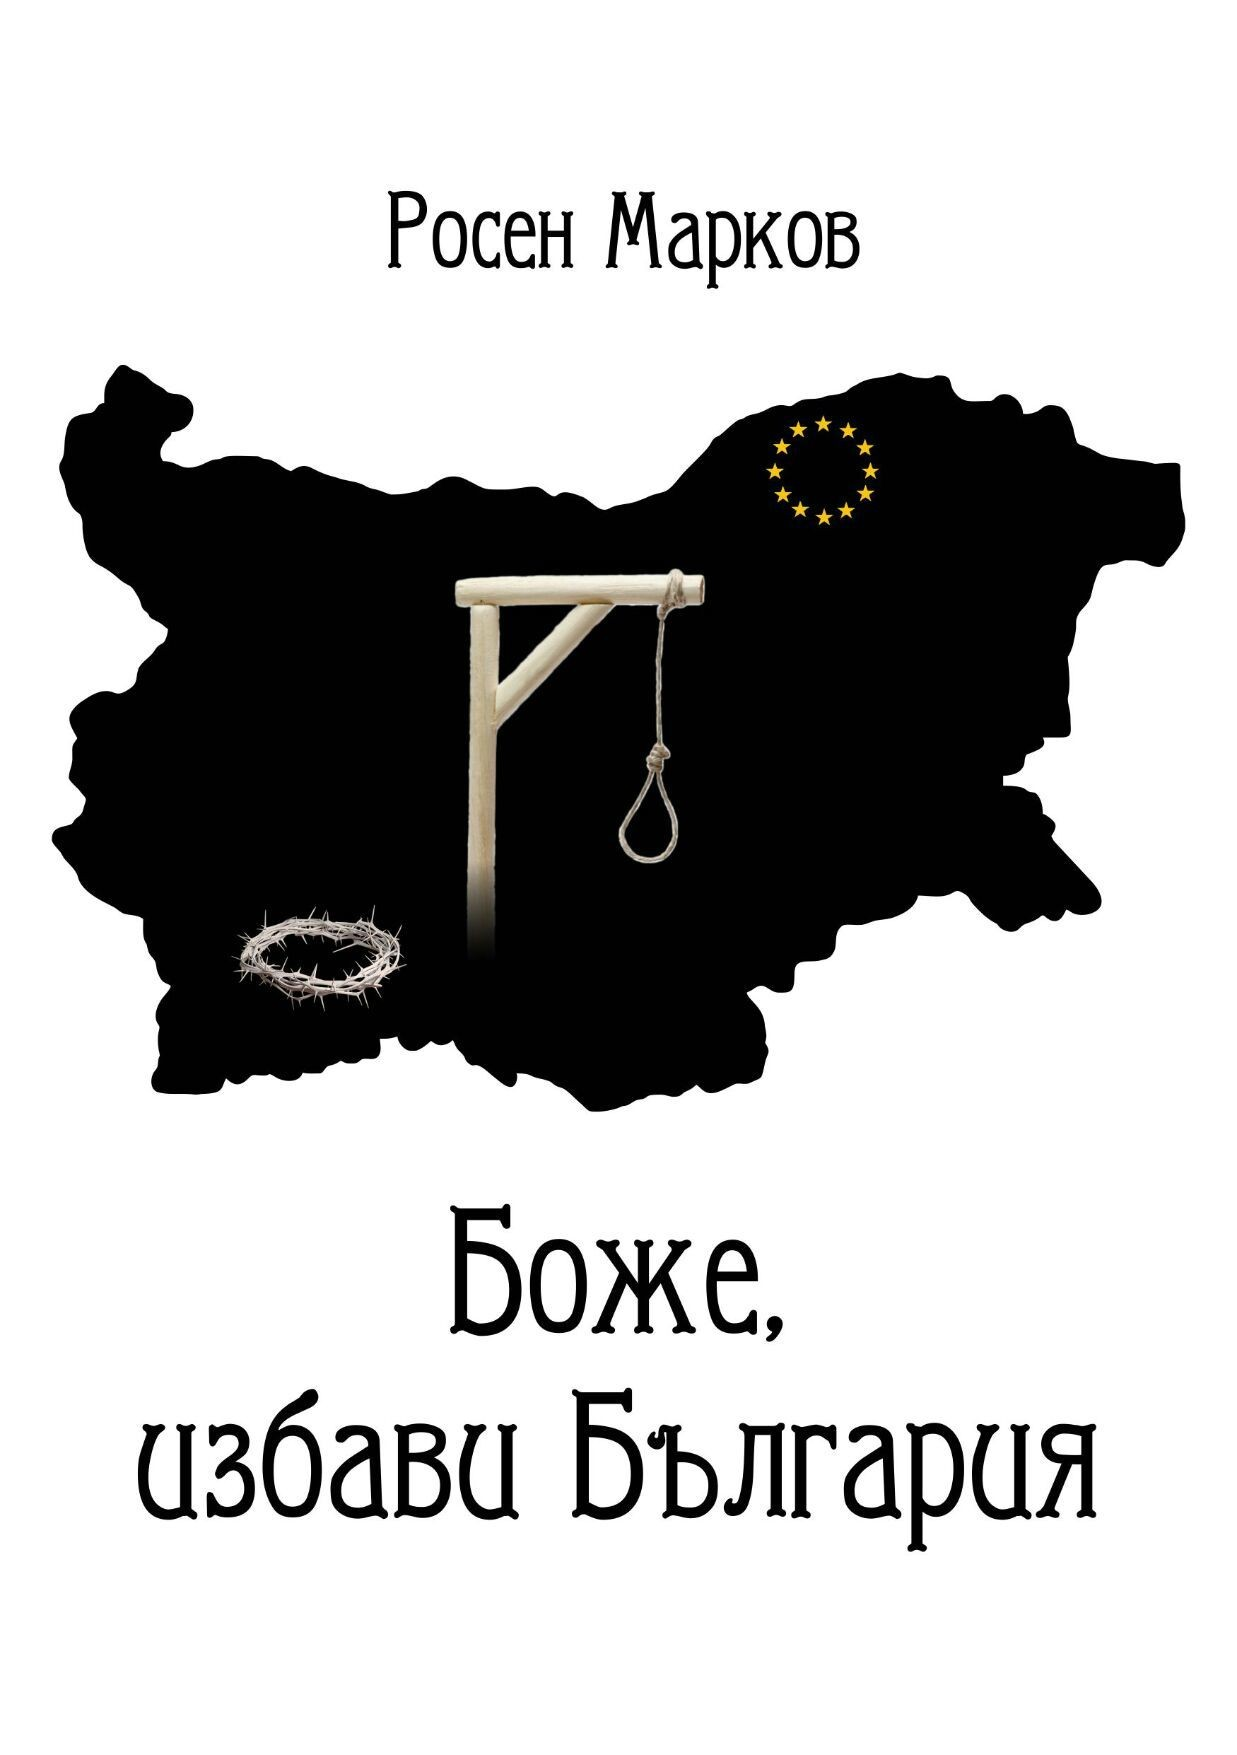 Here you are the cover of my book GOD SAVE BULGARIA